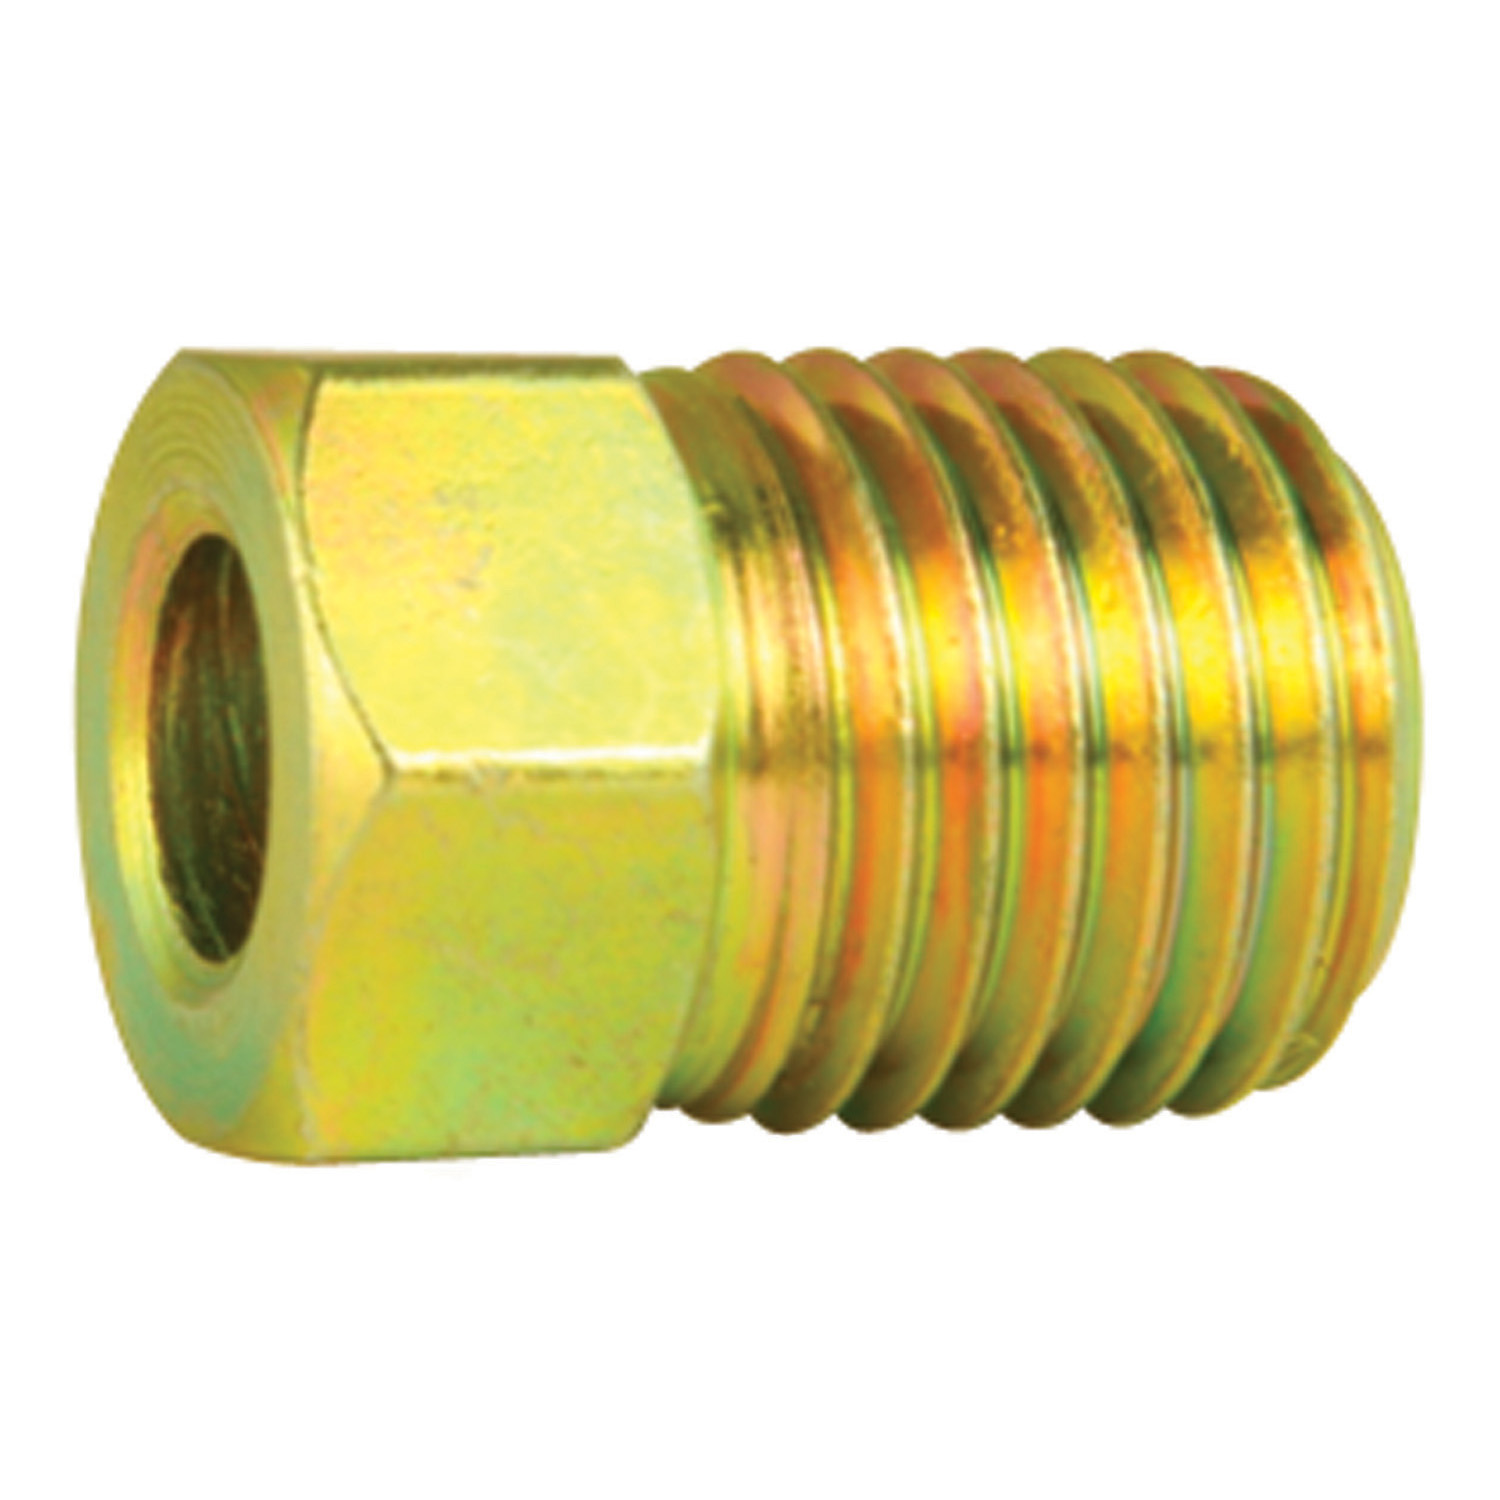 BLFX-12 AGS Tube End Fitting Nut 3/16 Inch Tube Size 3/8-24 Inverted